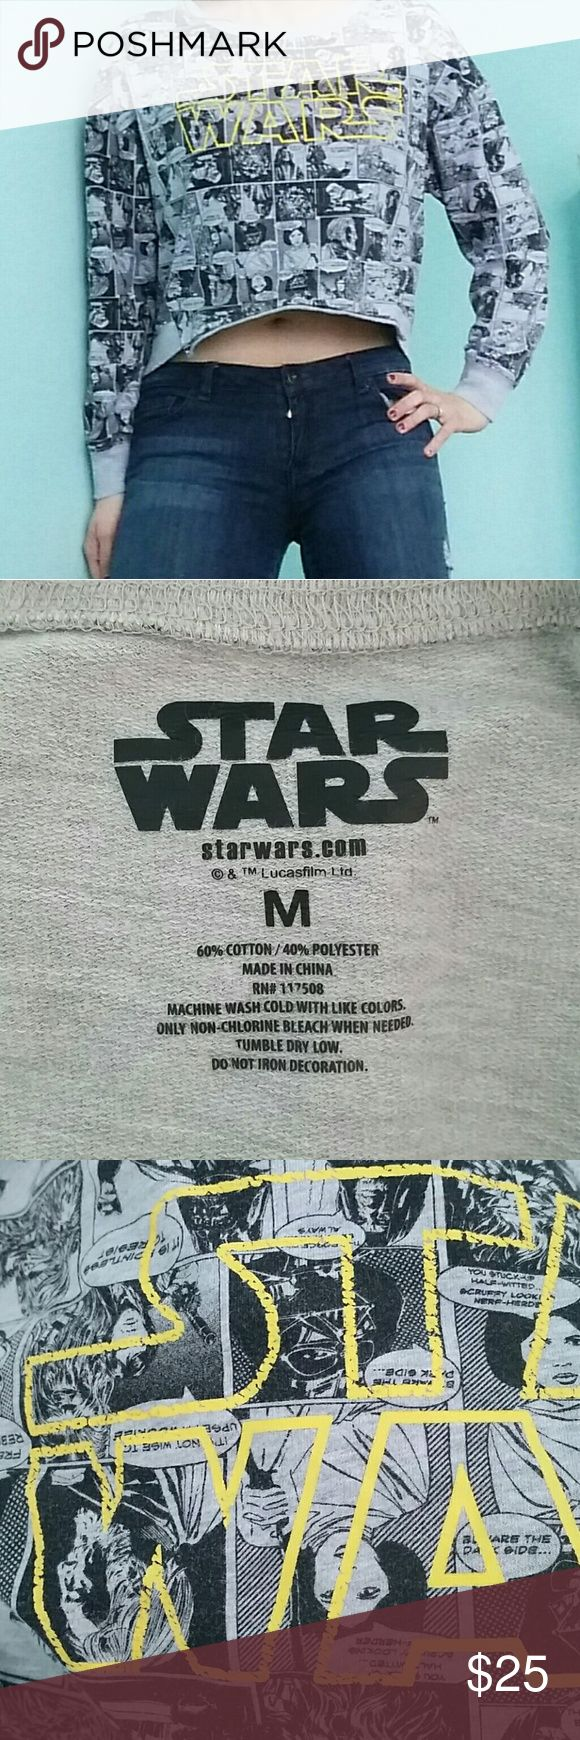 Star Wars Cropped Graphic Sweatshirt Grey M This is a cute cropped graphic sweatshirt in size M medium. It has a distressed yellow Star Wars graphic on the front. It is grey with black comic strips all over it. It is in good, used condition- any signs of wear may be seen by photos. Approximate measurements shown. Offers welcome! Thank for looking! ☺ Star Wars Tops Crop Tops